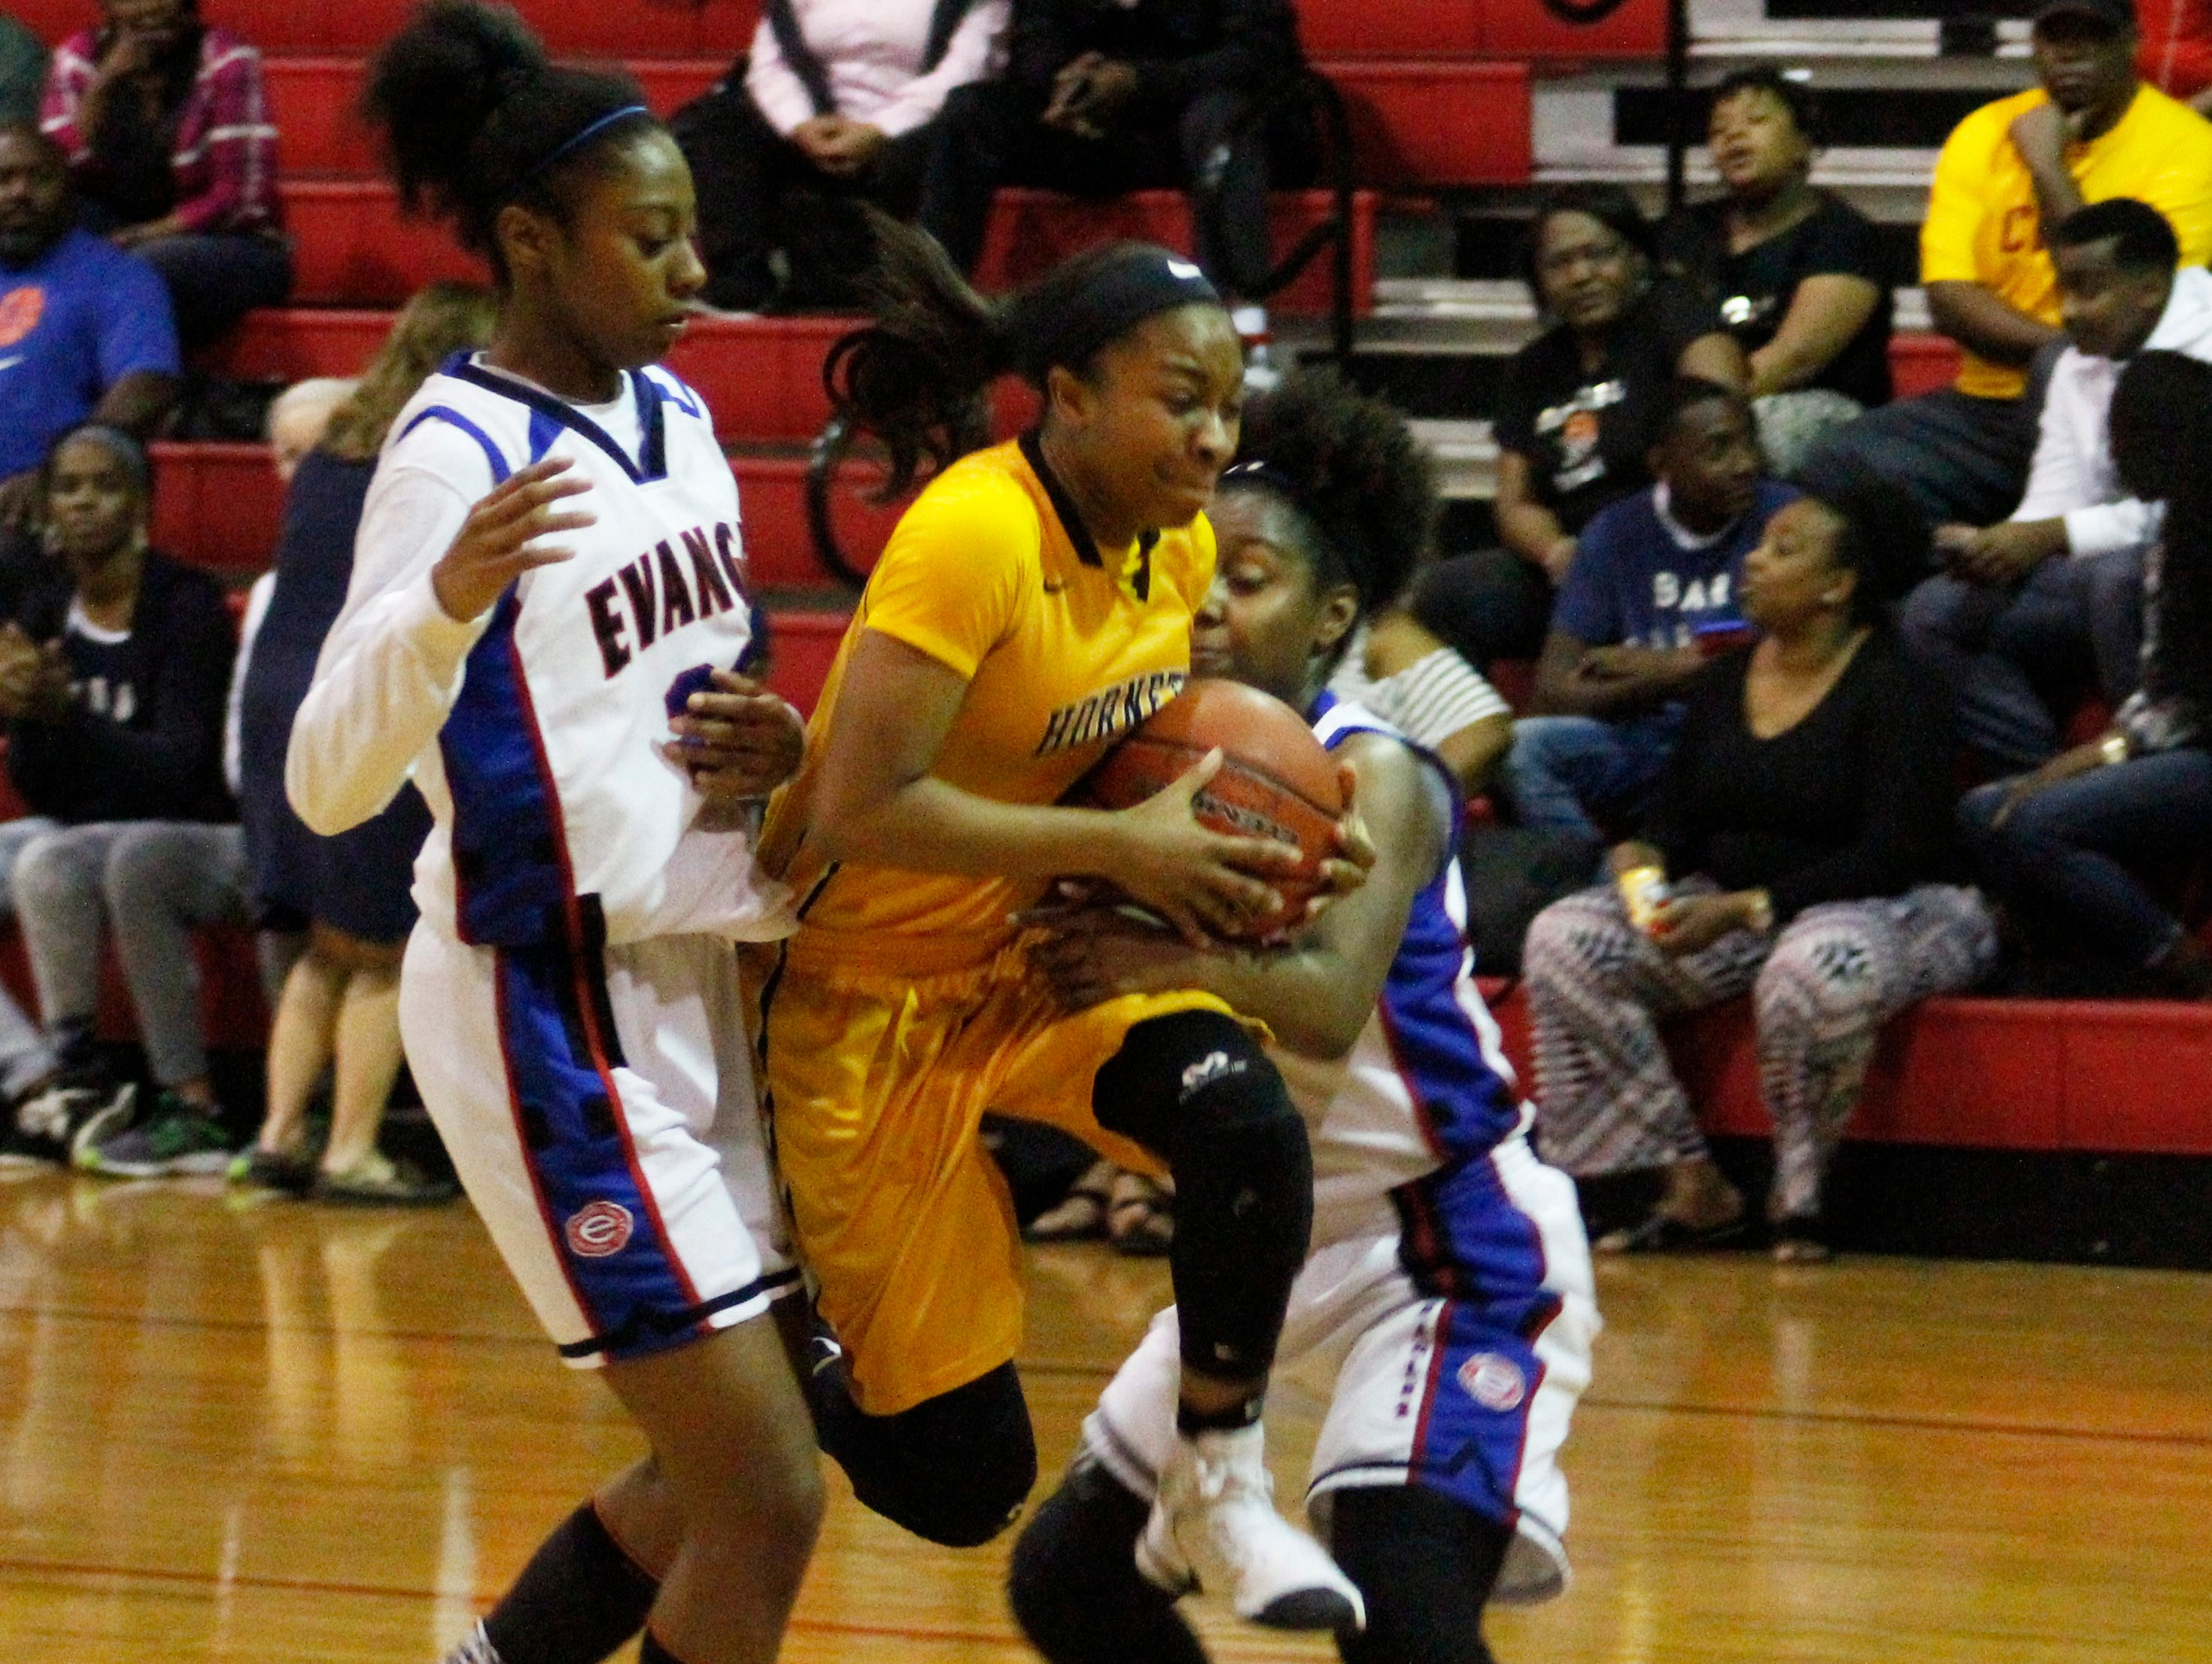 A Scotlandville player forces her way between Evangel's Tiara Young (left) and Madison Laboy. The Lady Hornets won the game.